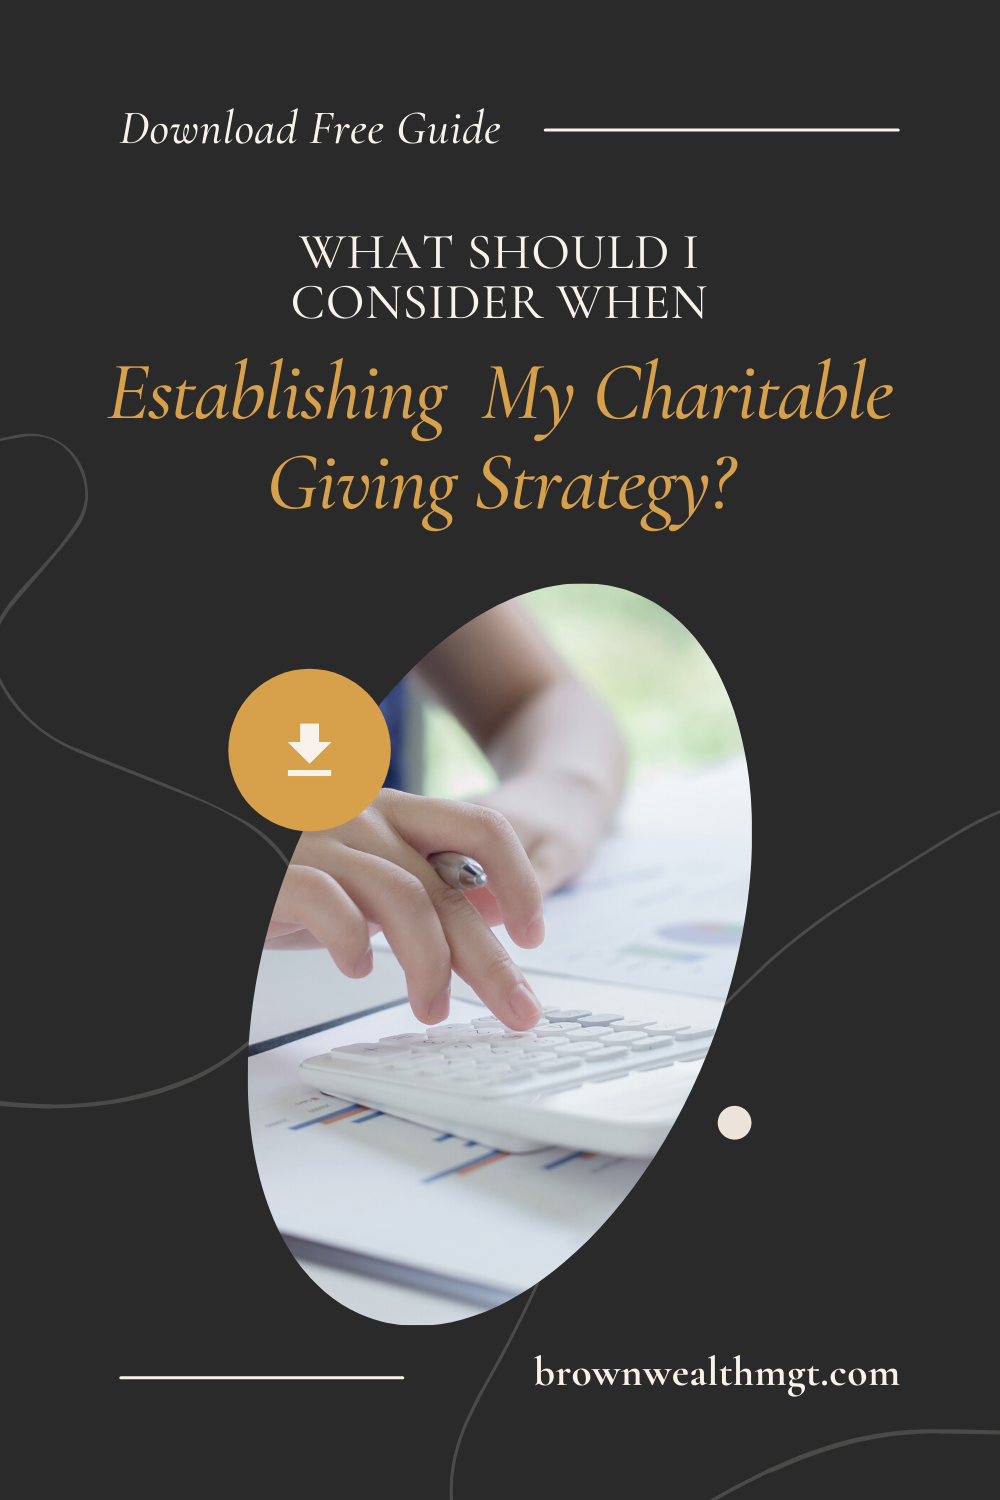 What should I consider when establishing my charitable giving strategy?